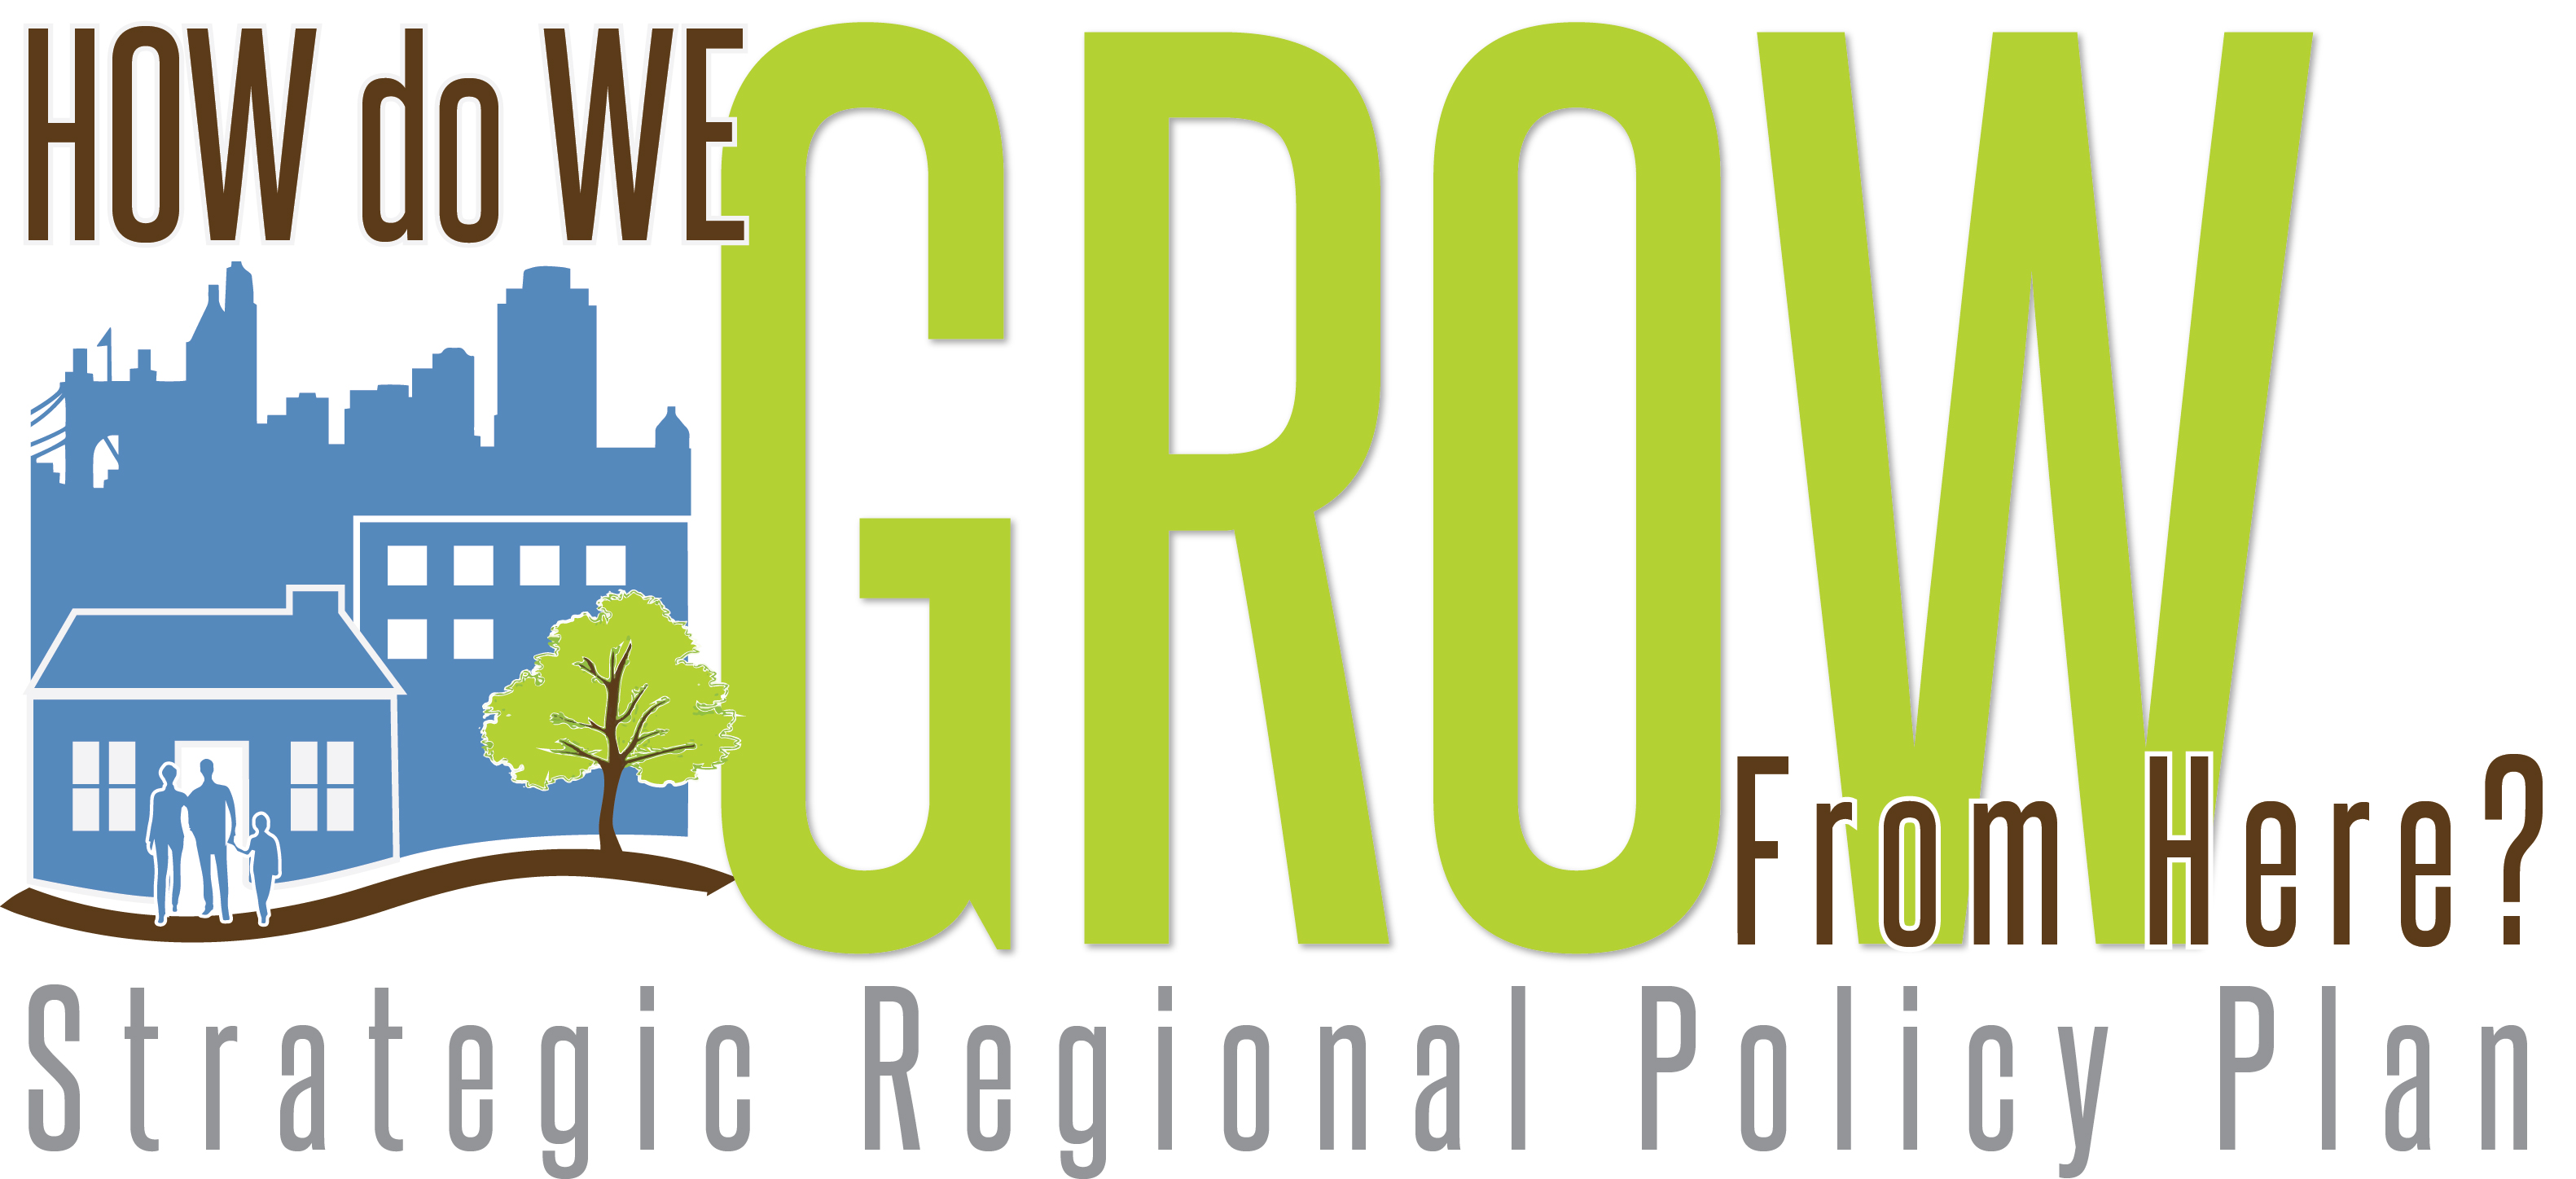 What is regional policy? Definition and examples - Market